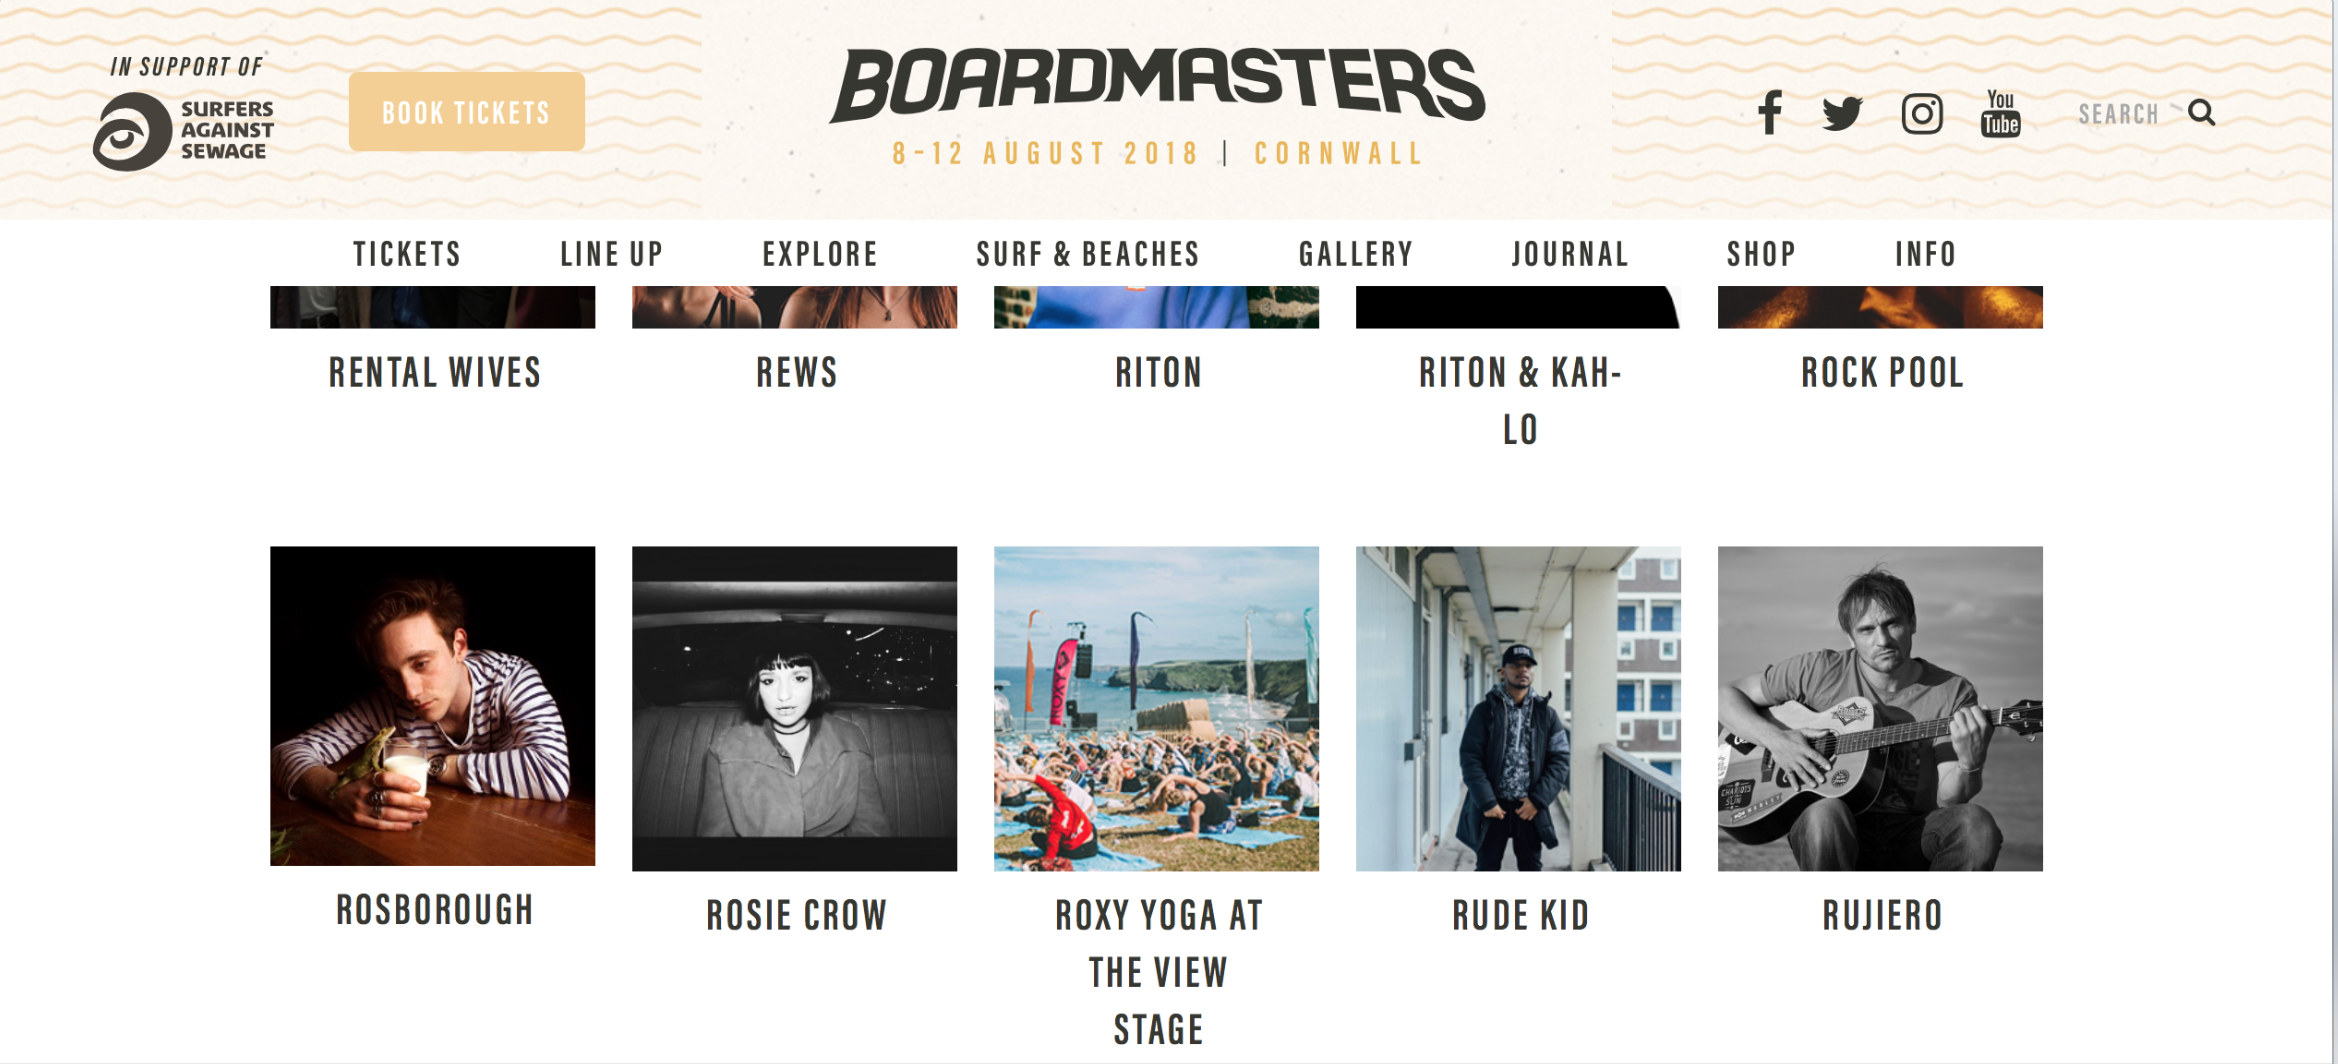 Ecstatic to say I'm performing at the Opening Night at THE BOARDMASTERS INTERNATIONAL SURF AND MUSIC FESTIVAL 8th-13th AUGUST 2018. Information and tickets available at www.boardmasters.com